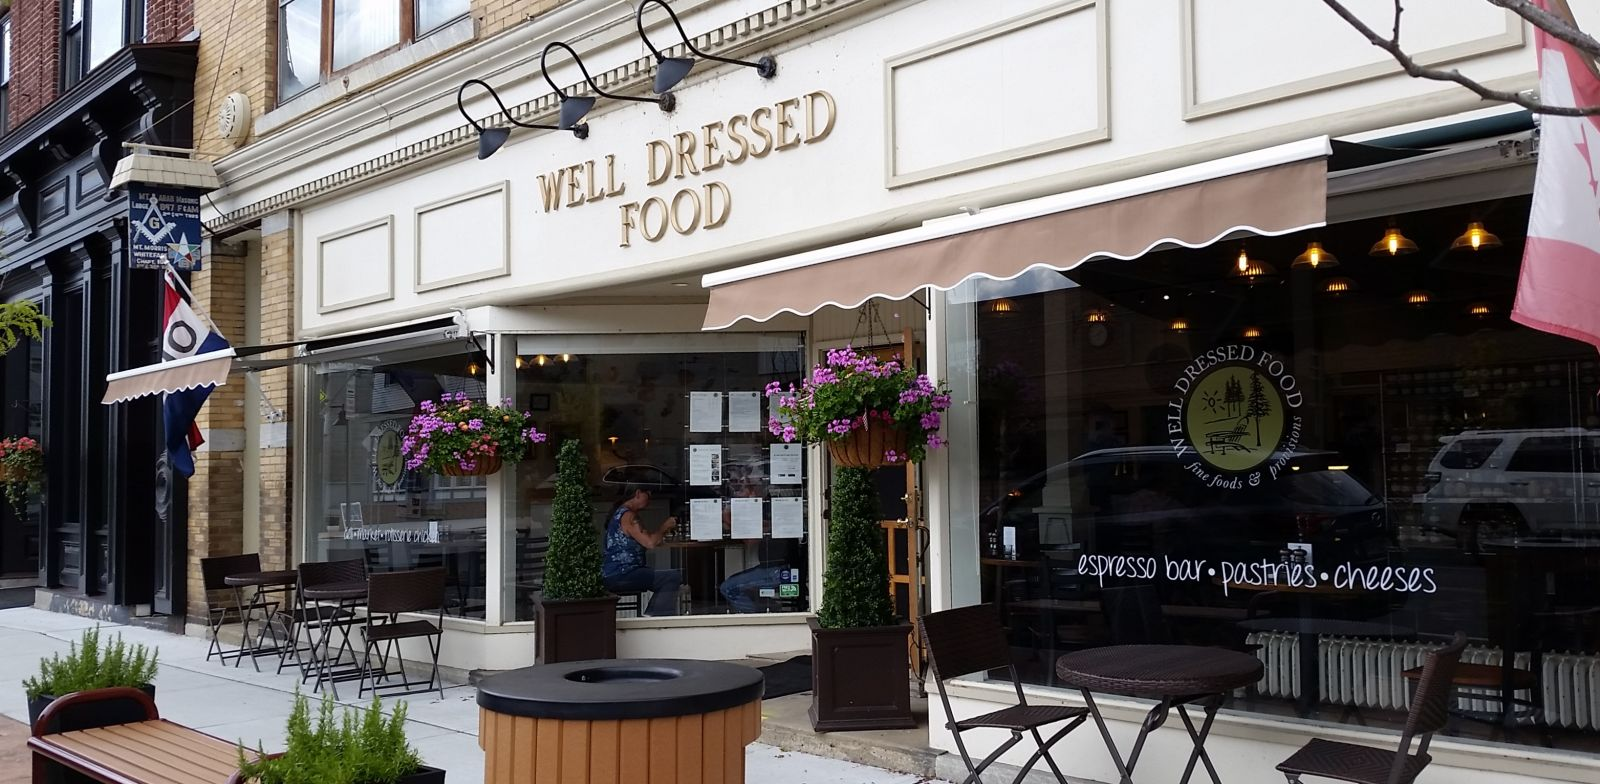 Time for lunch at Well Dressed Food!